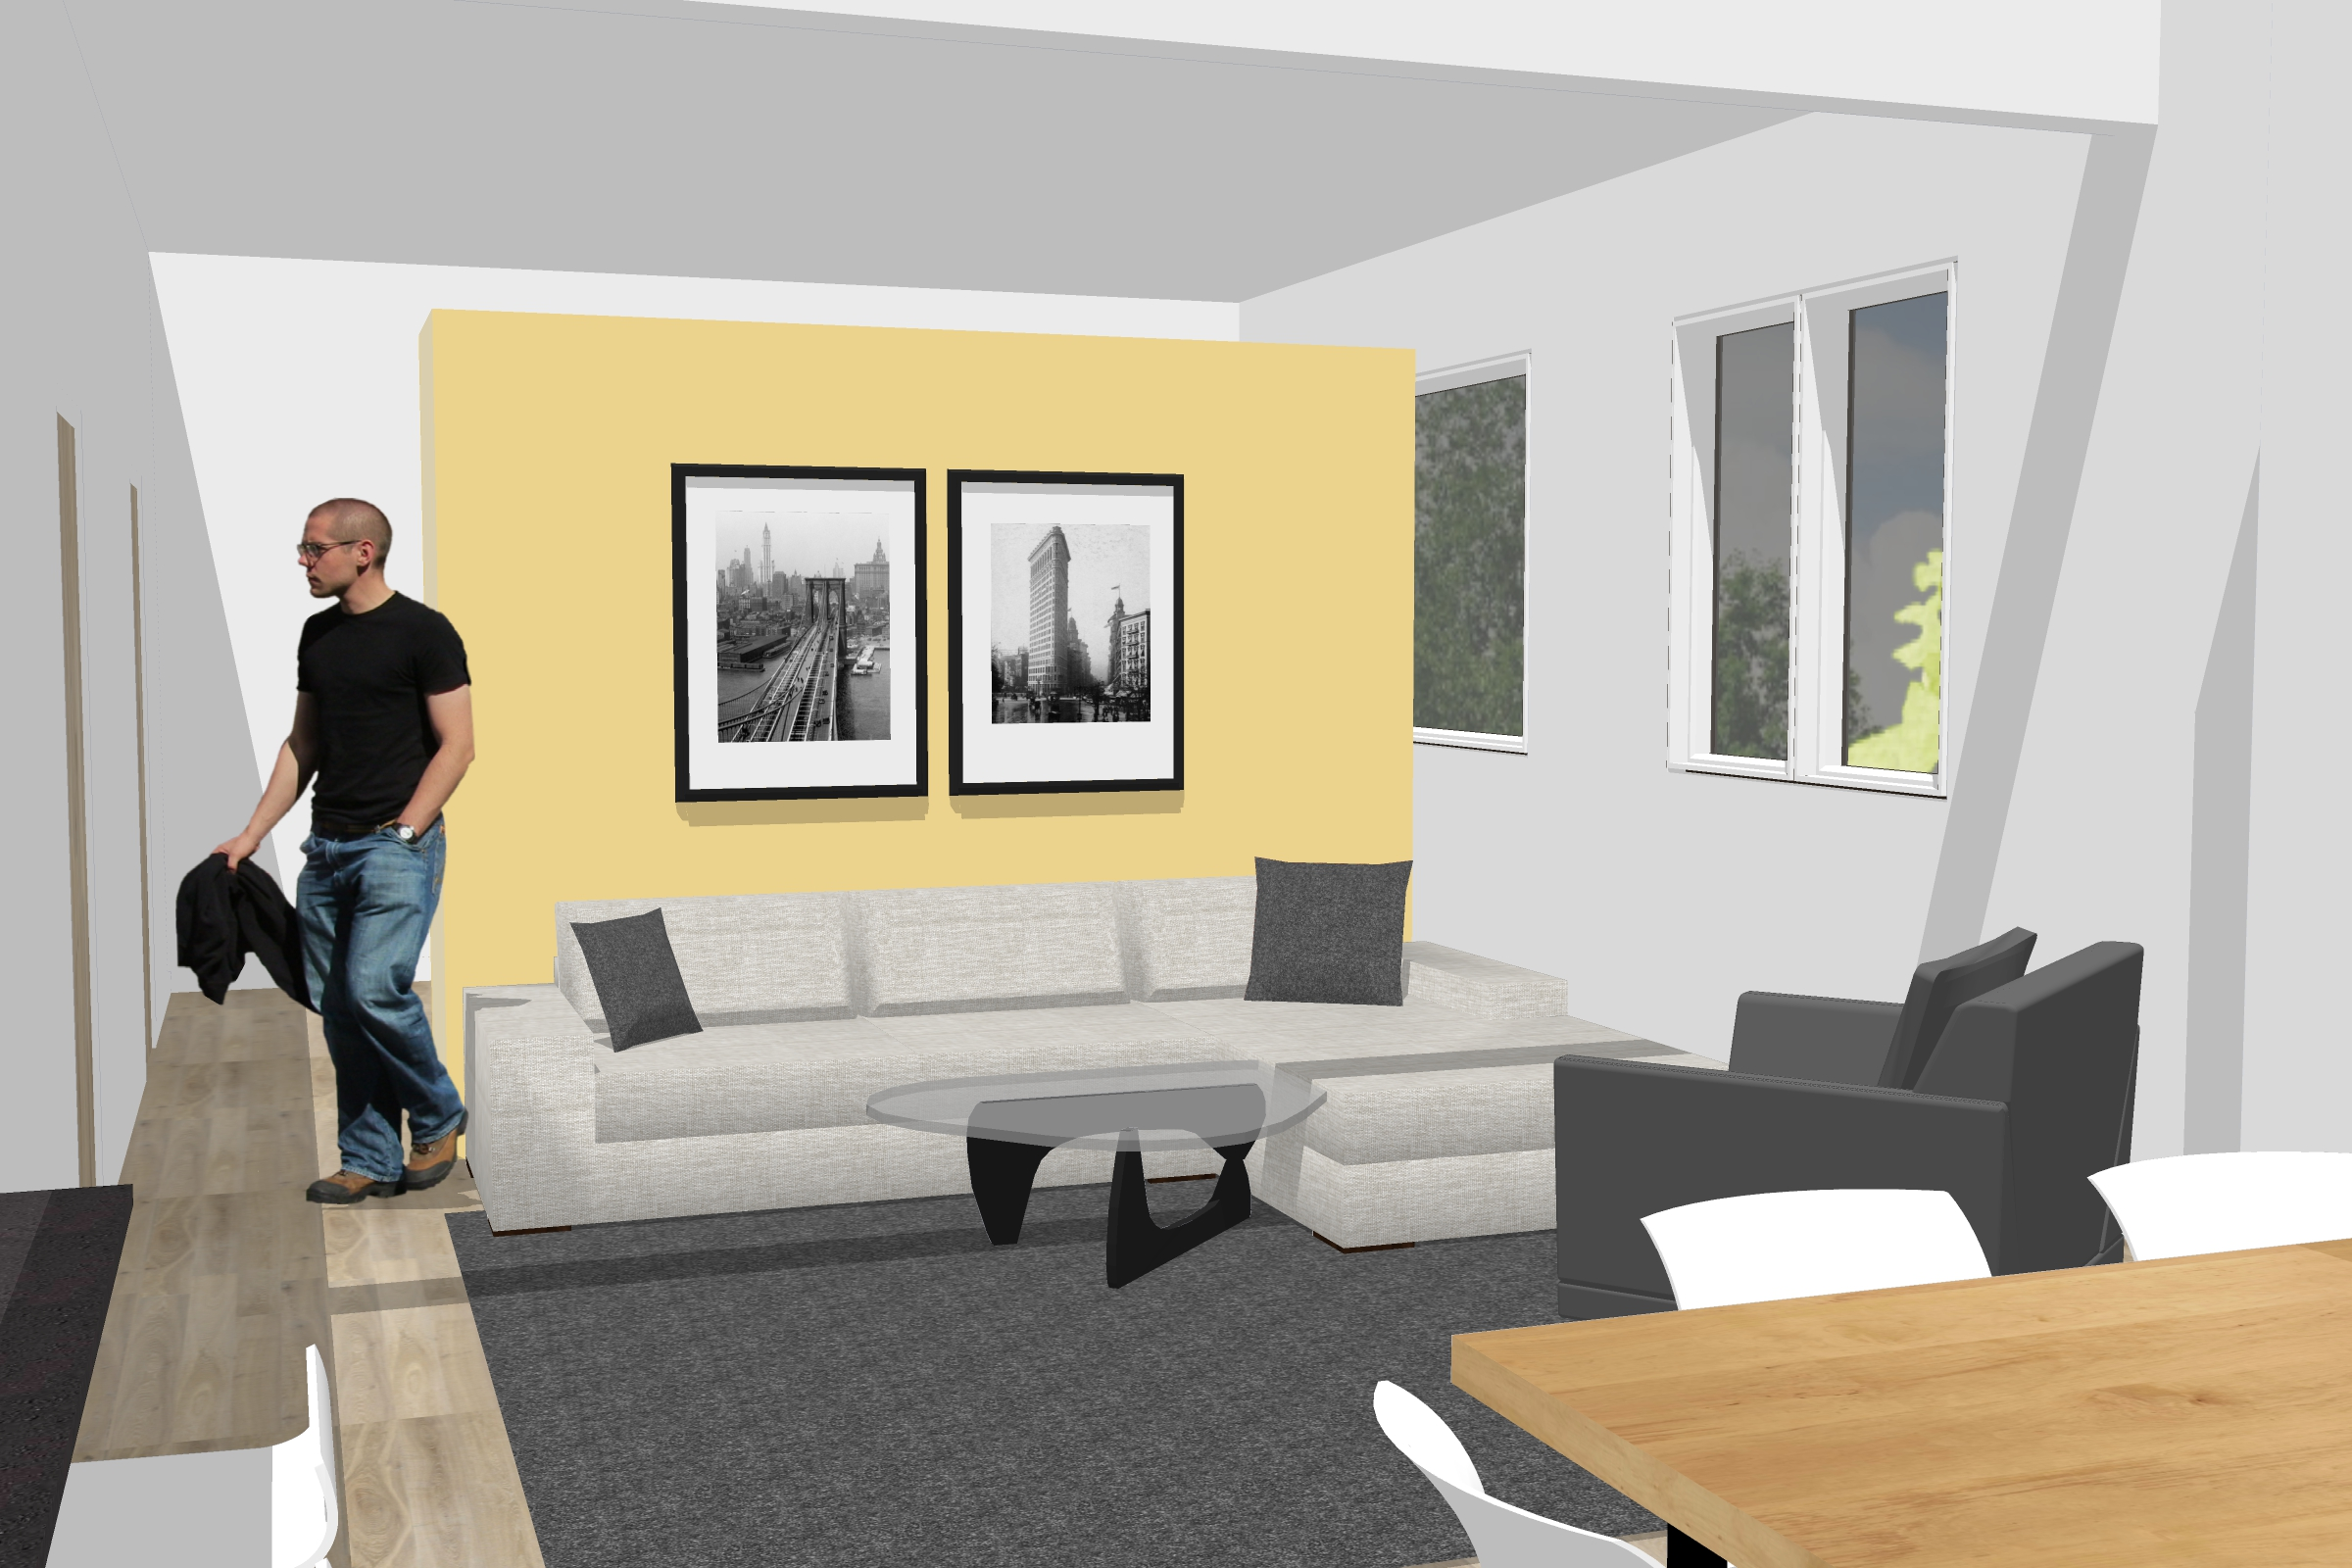 small_BLDG 3 INTERIOR 2-1BR.jpg